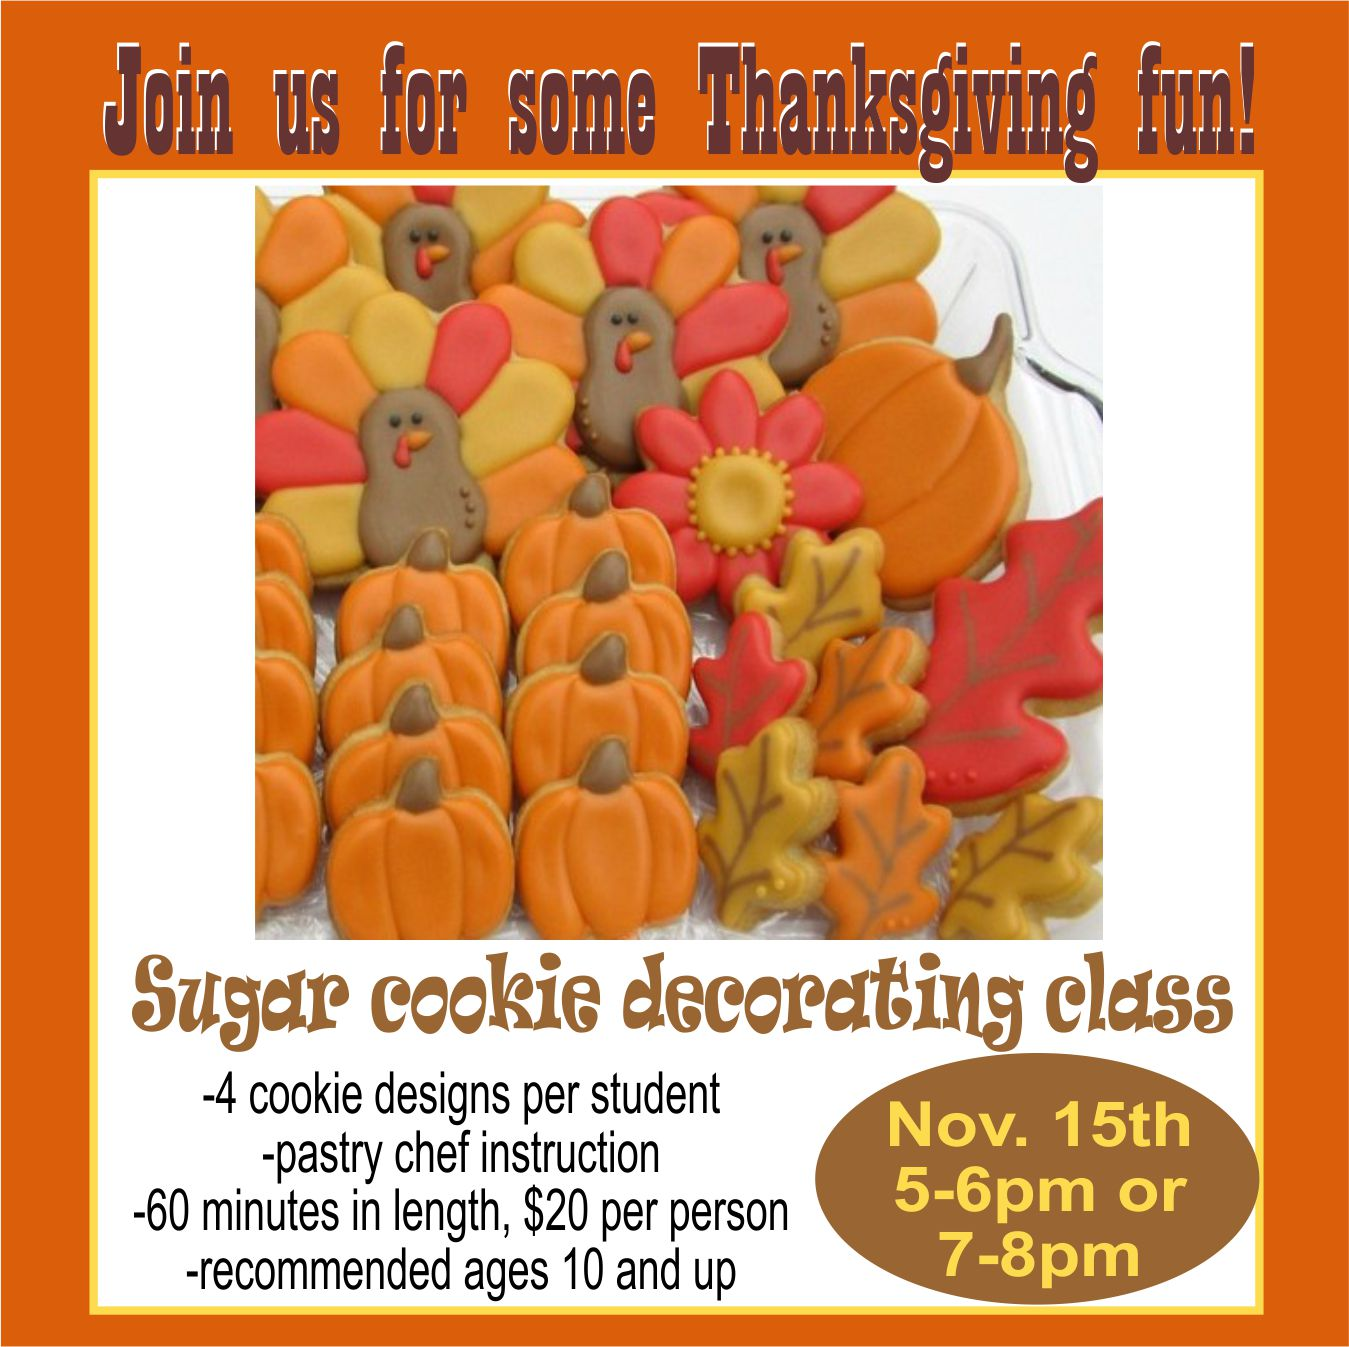 Thanksgiving cookie decorating class flyer.jpg